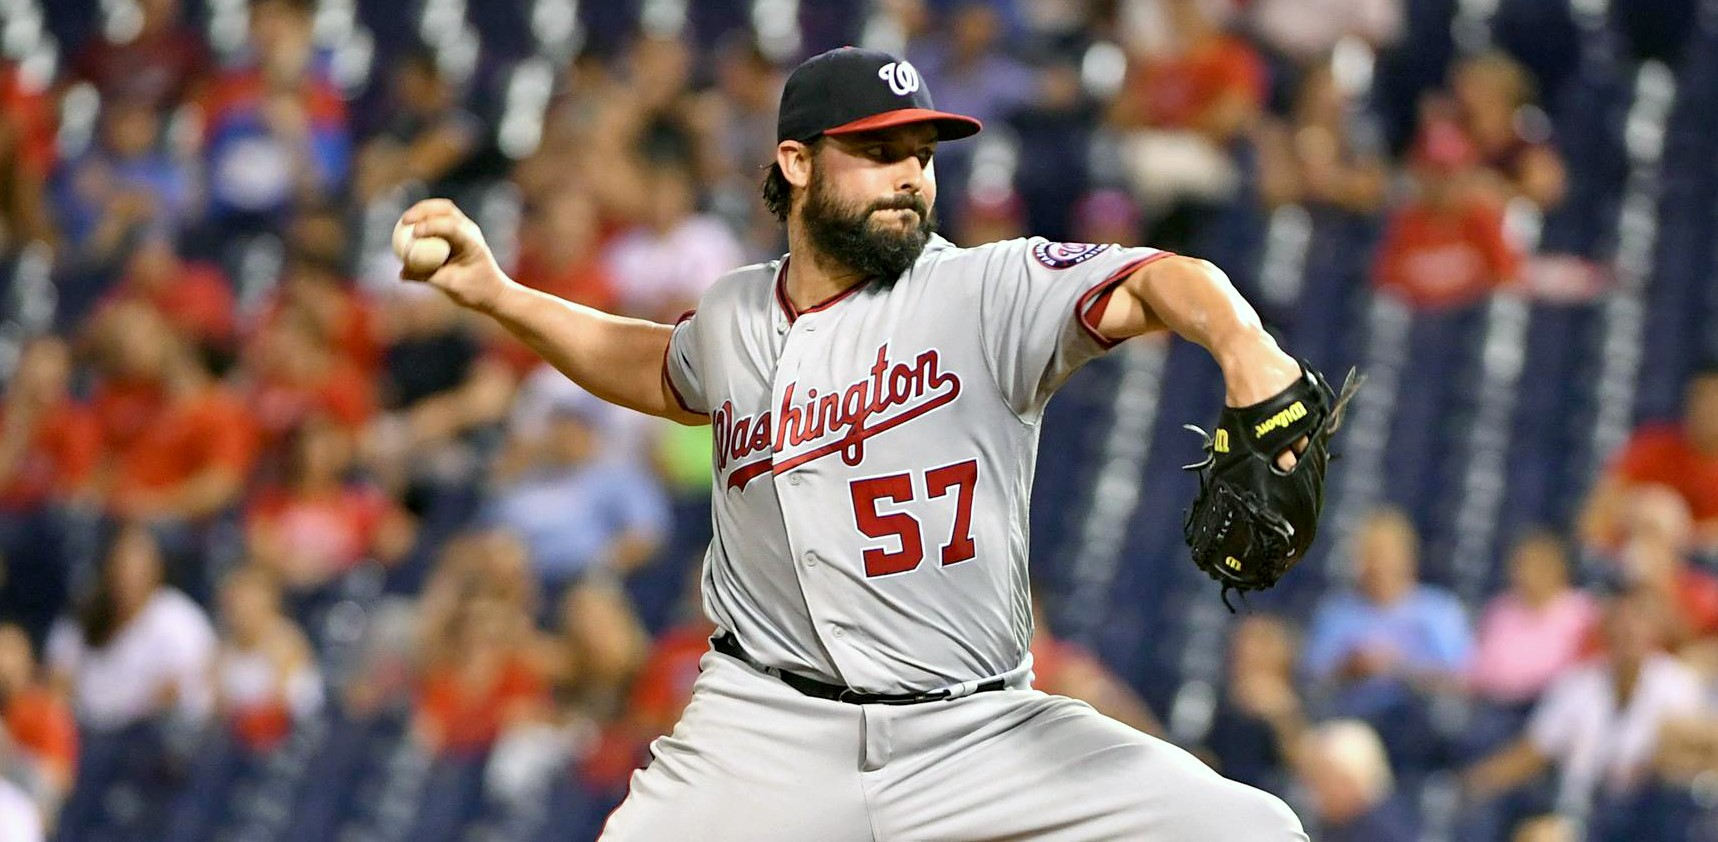 Tanner Roark pitching for the Washington Nationals